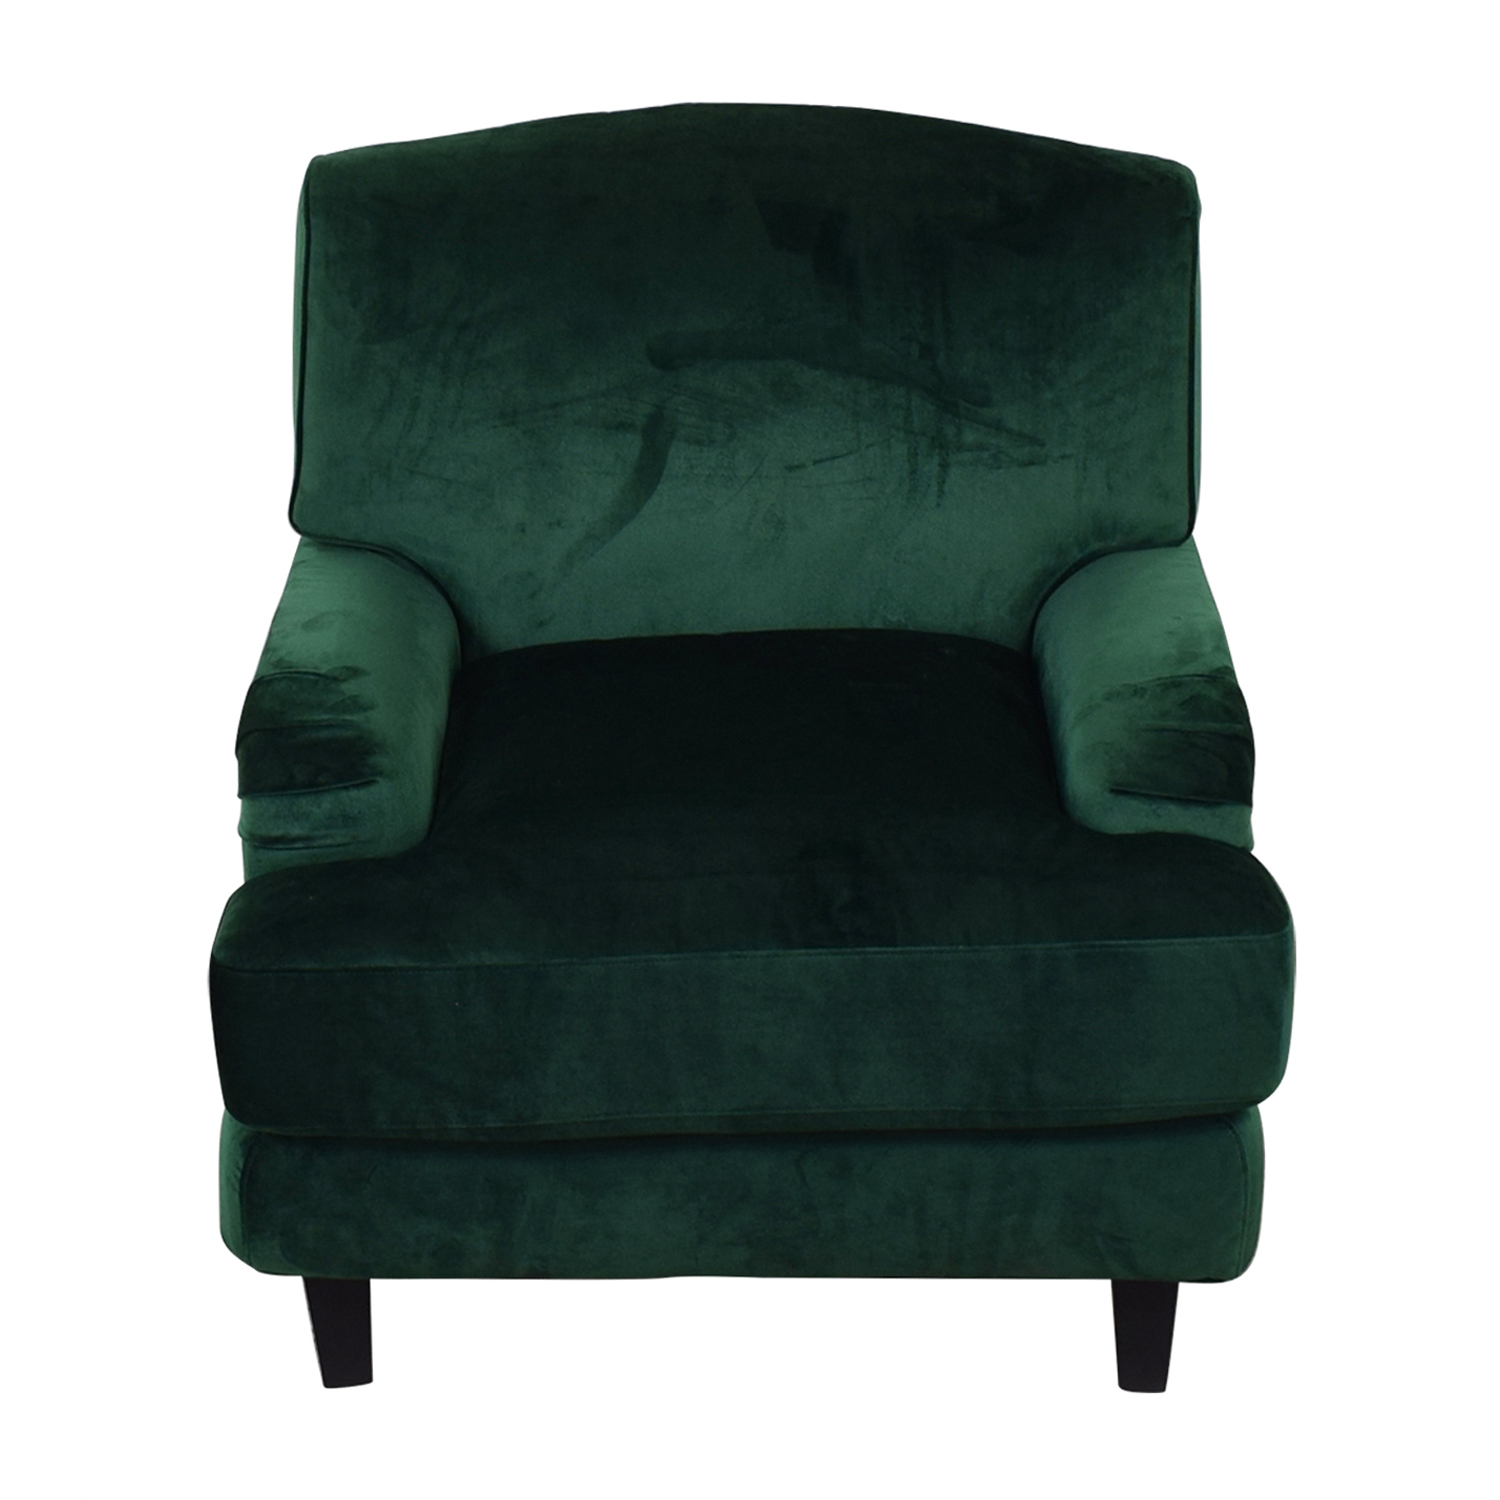 buy Rose Emerald Green Chair